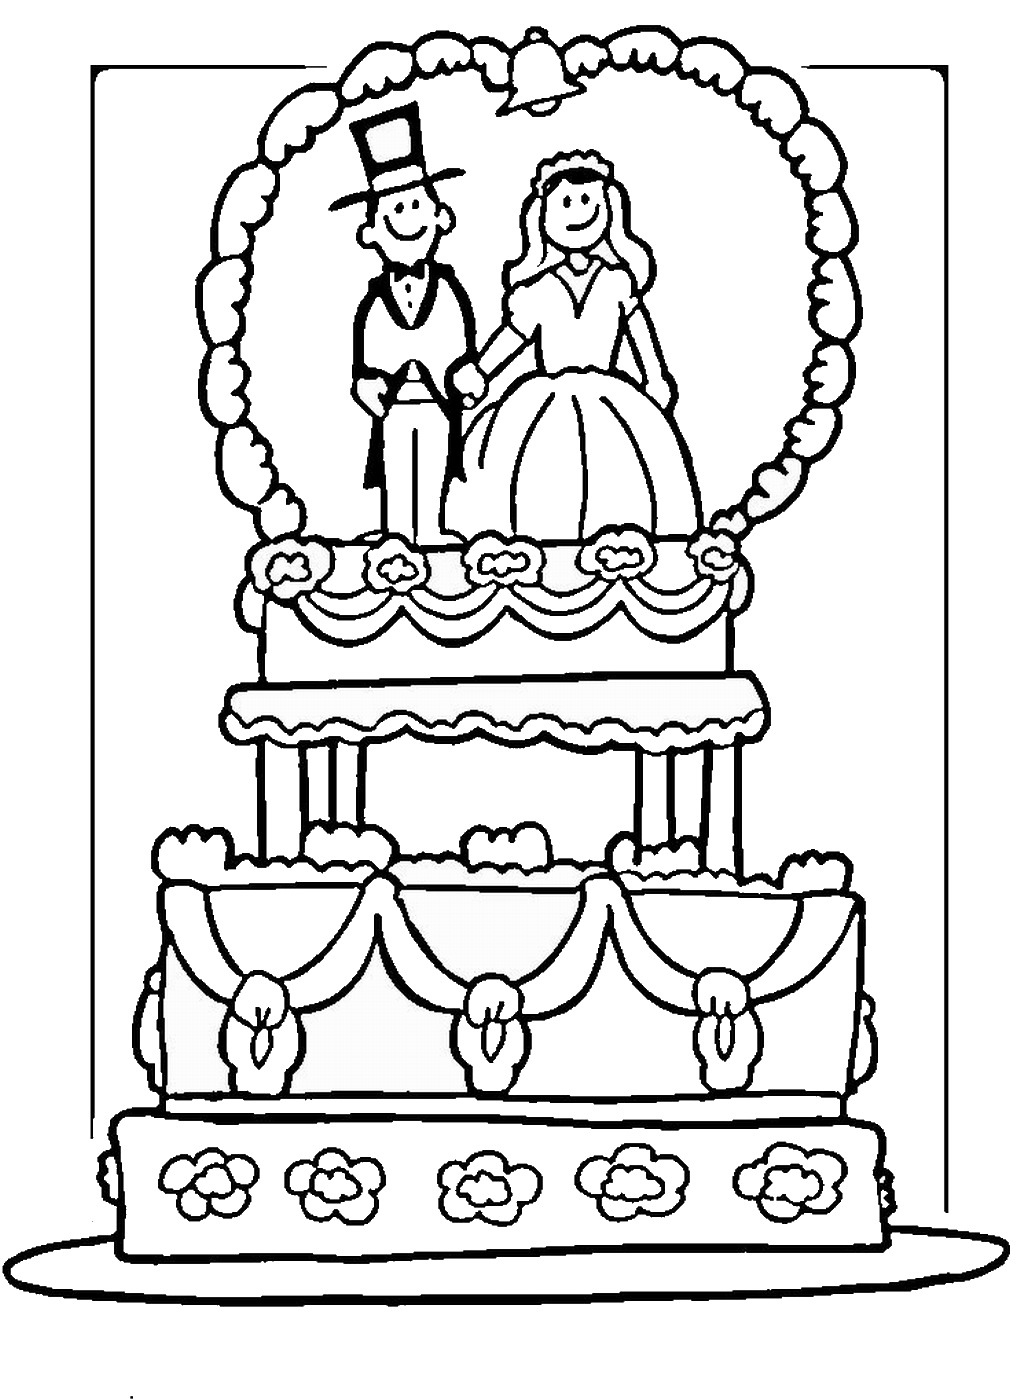 Cooking & Baking Coloring Pages